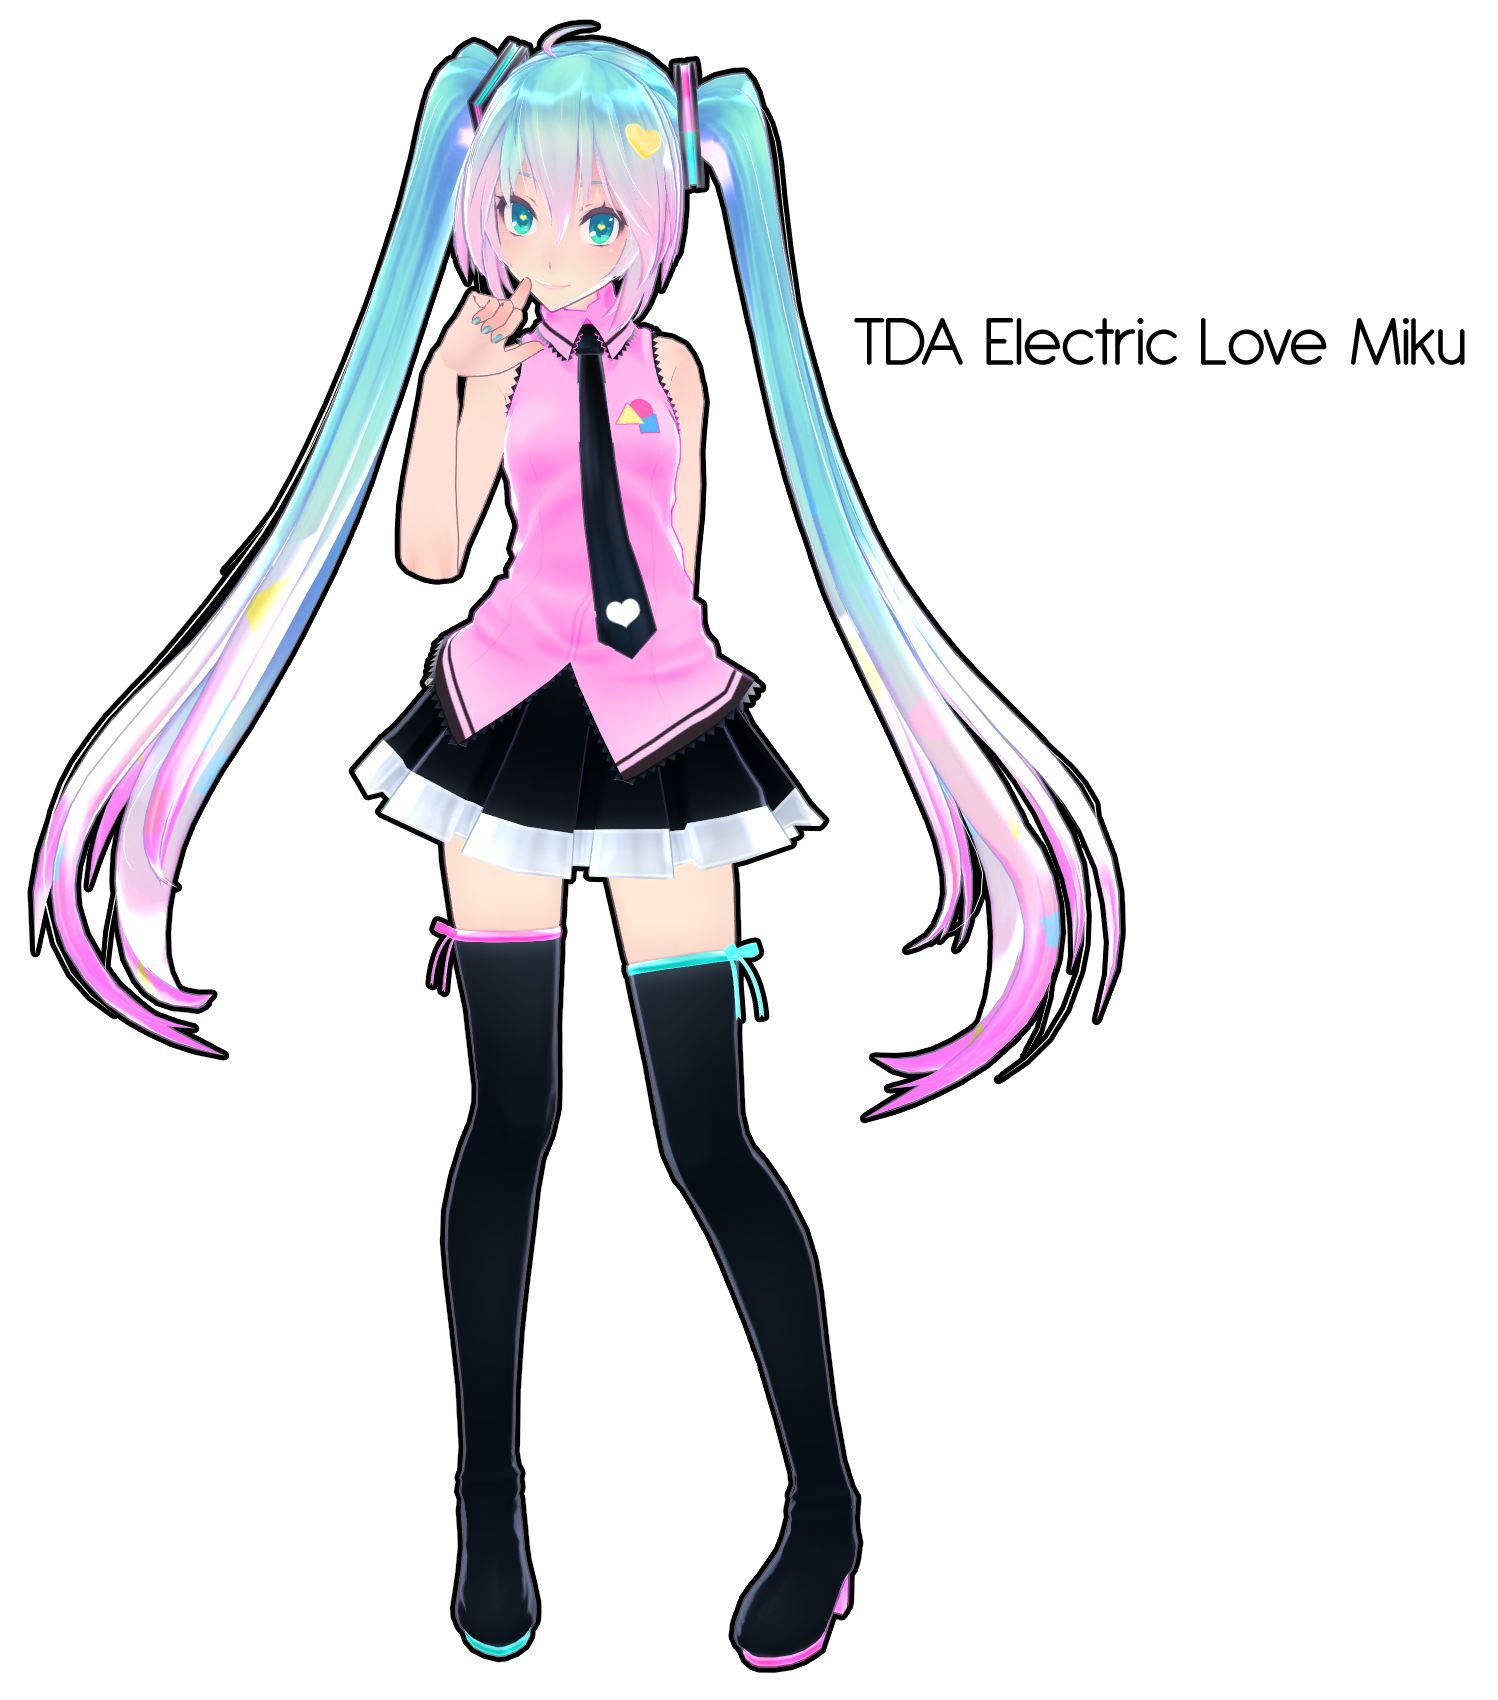 TDA Electric Love Miku DL By Xoriu On DeviantArt